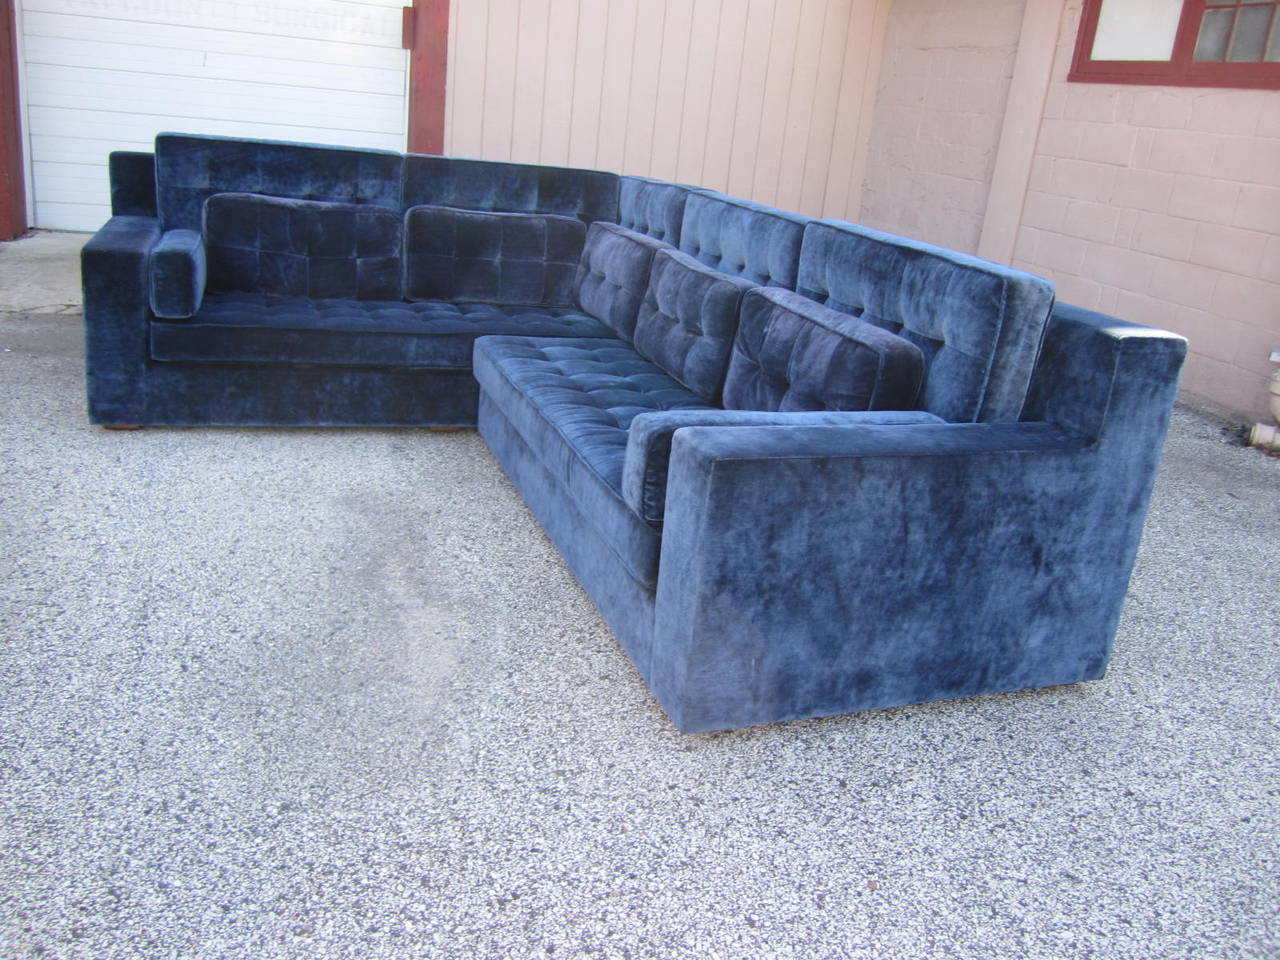 Stunning Large-Scale Harvey Probber Style Sectional Sofa, Mid-Century Modern For Sale 4